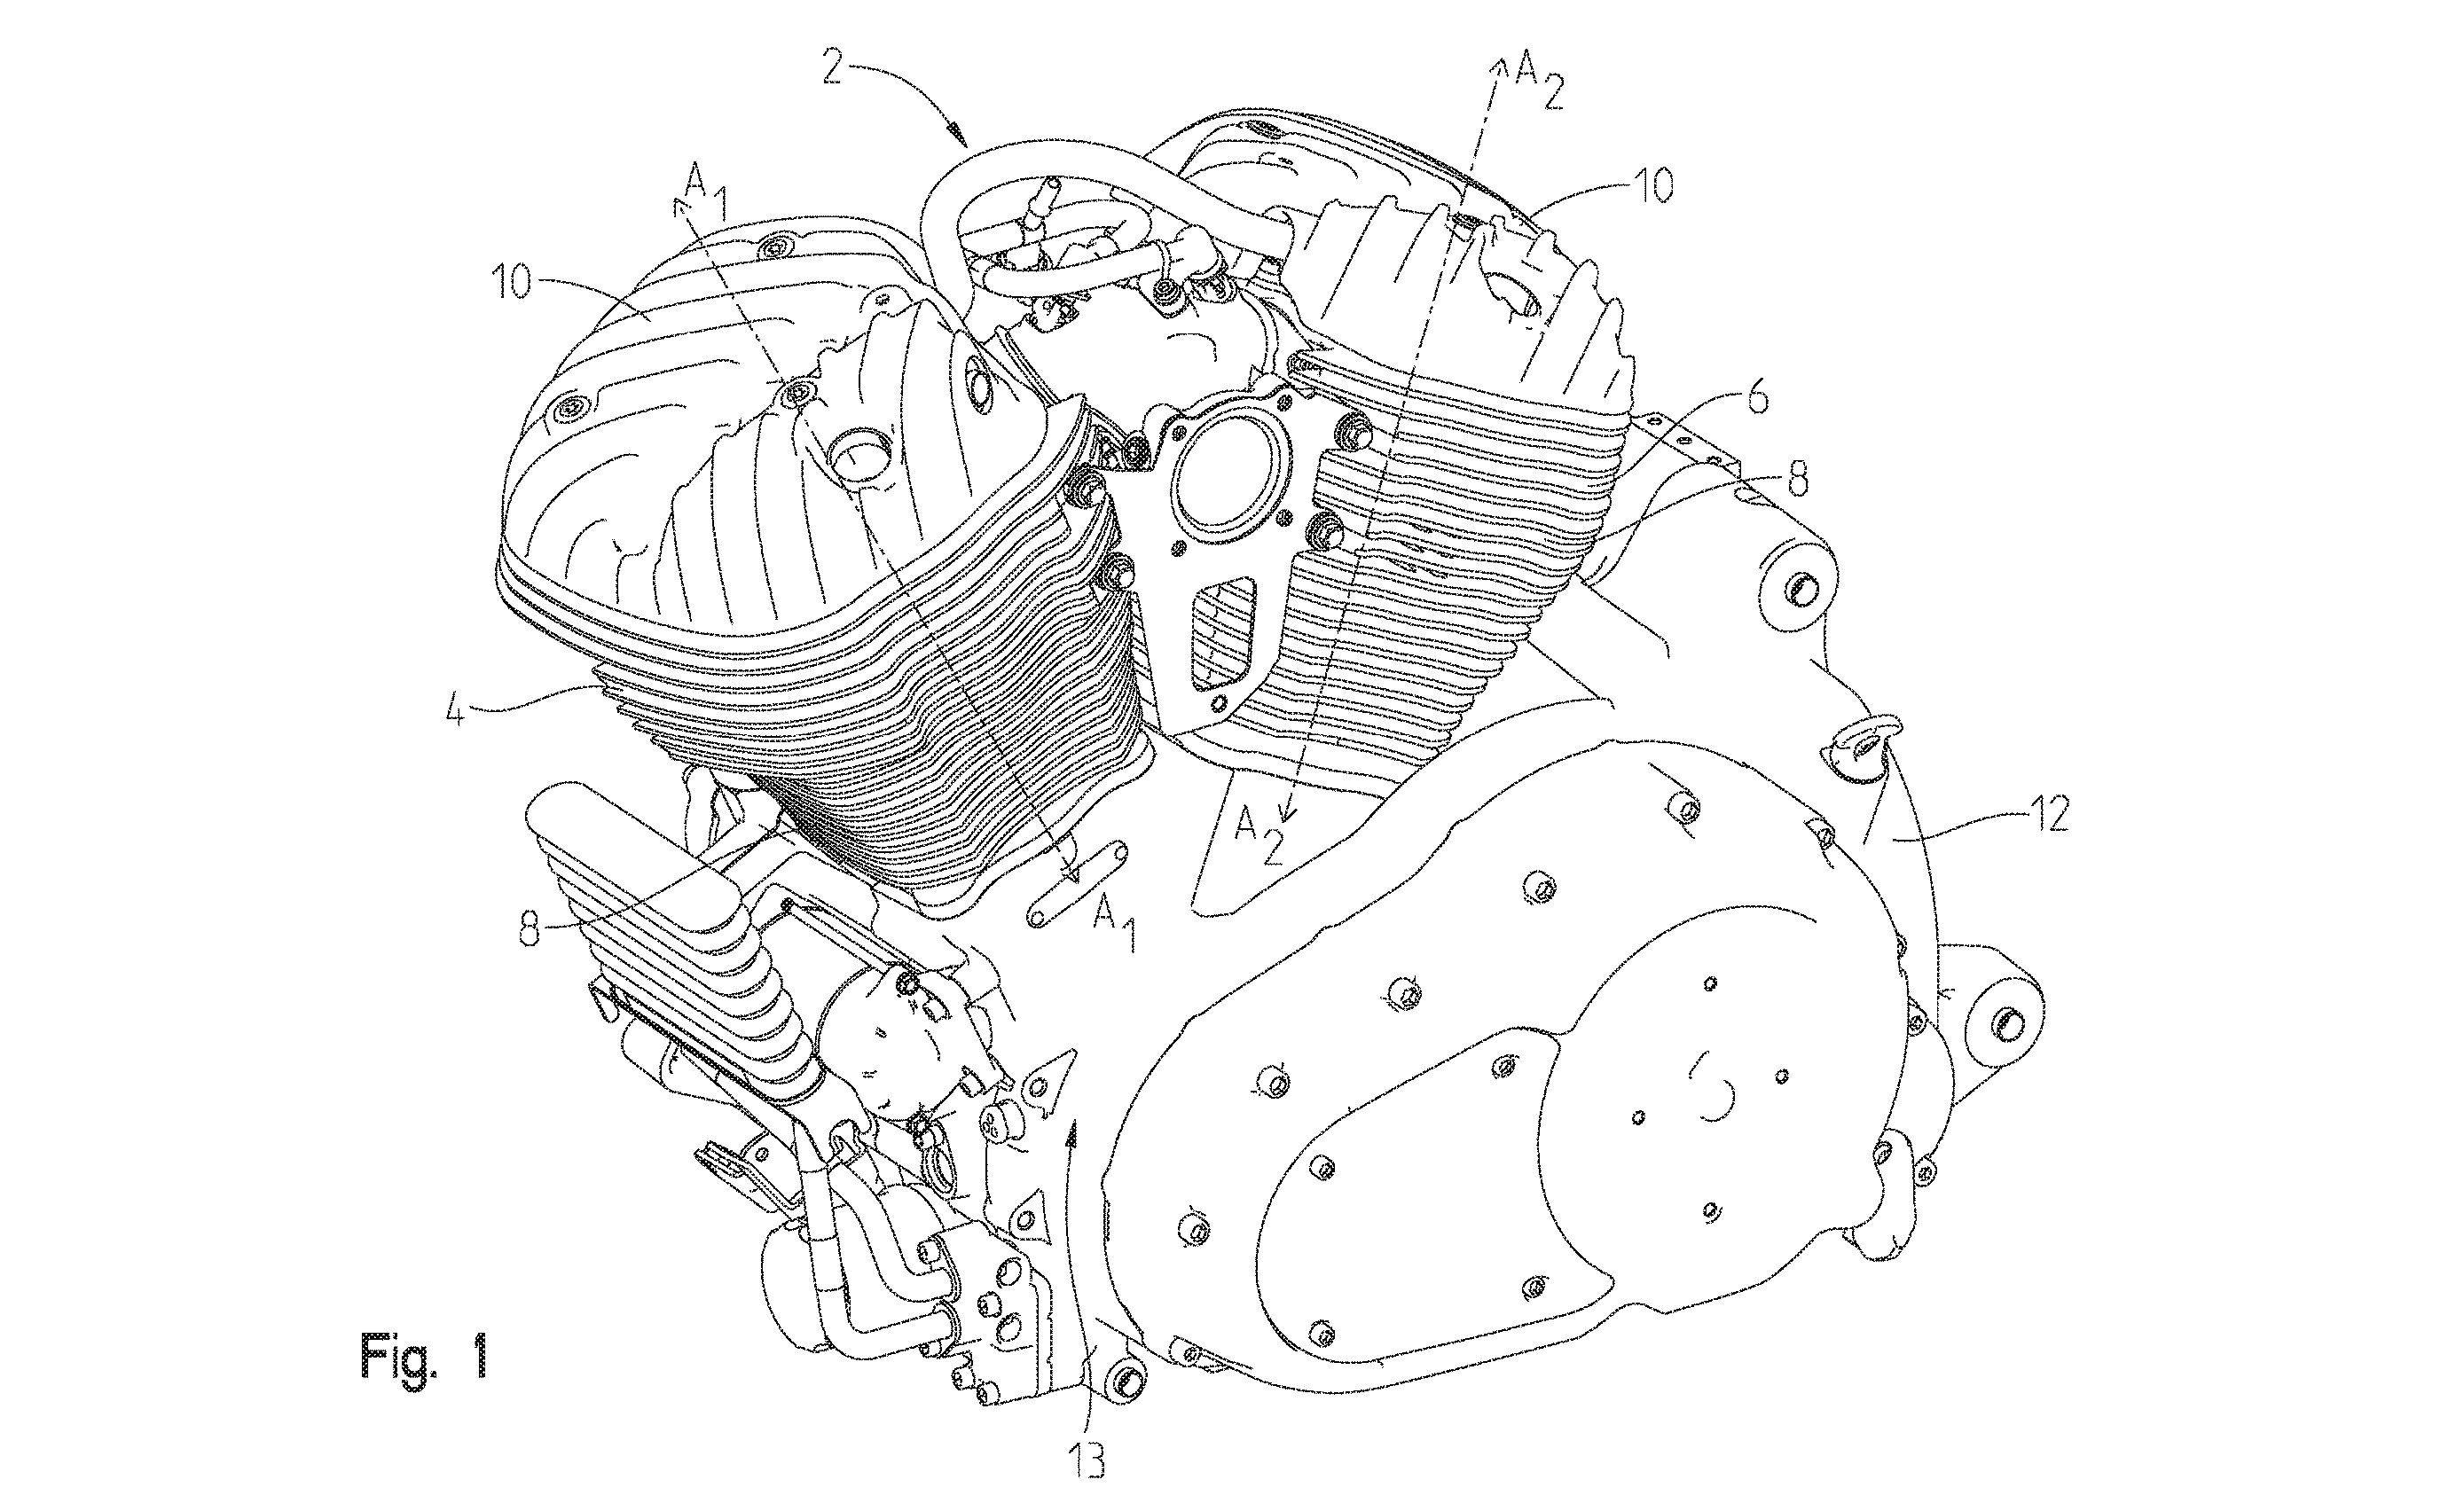 050919-indian-thunder-stroke-vvt-patent-fig-1